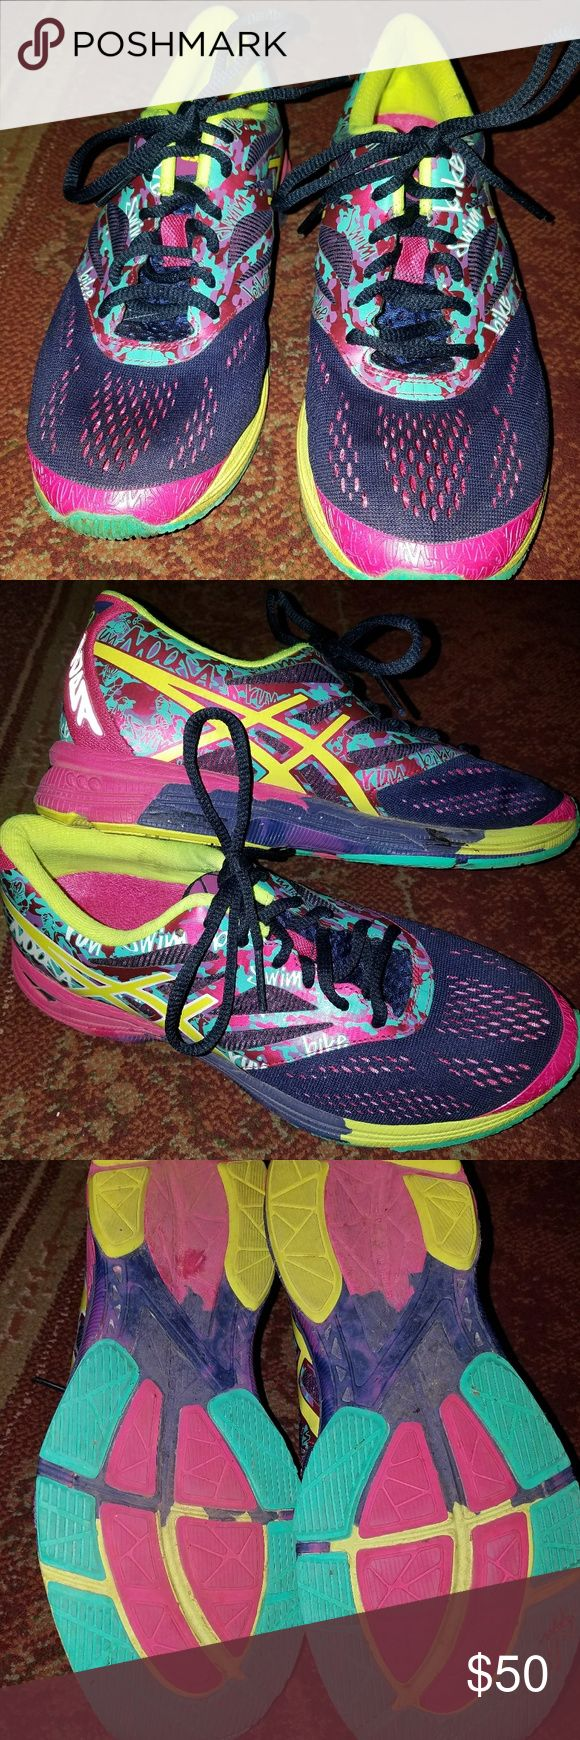 Asics womens athletic shoes Multi colored, gel noosa tri athletic shoes. They are in great shape still. Asics Shoes Athletic Shoes